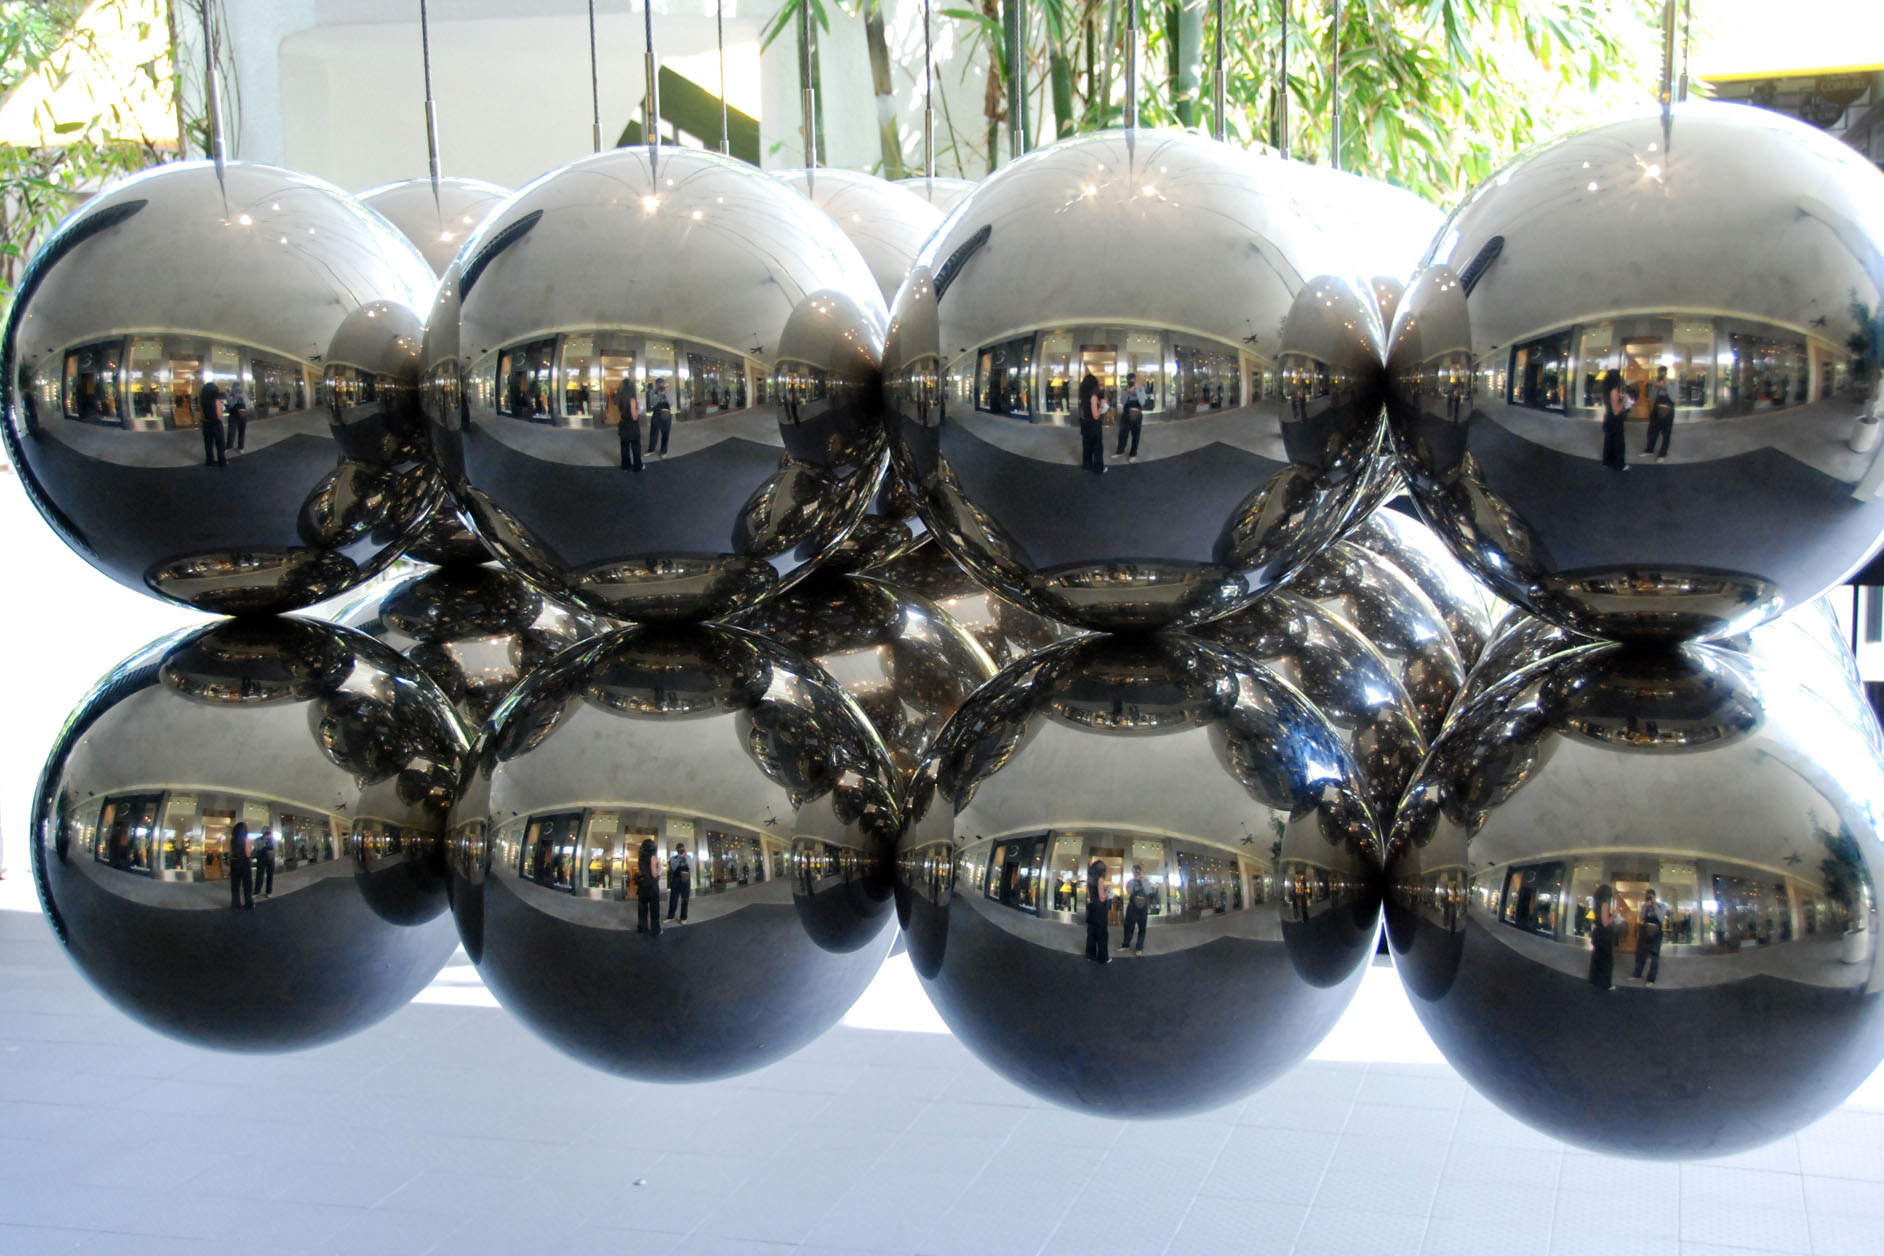 Metal balls, florida, january 2007 photo